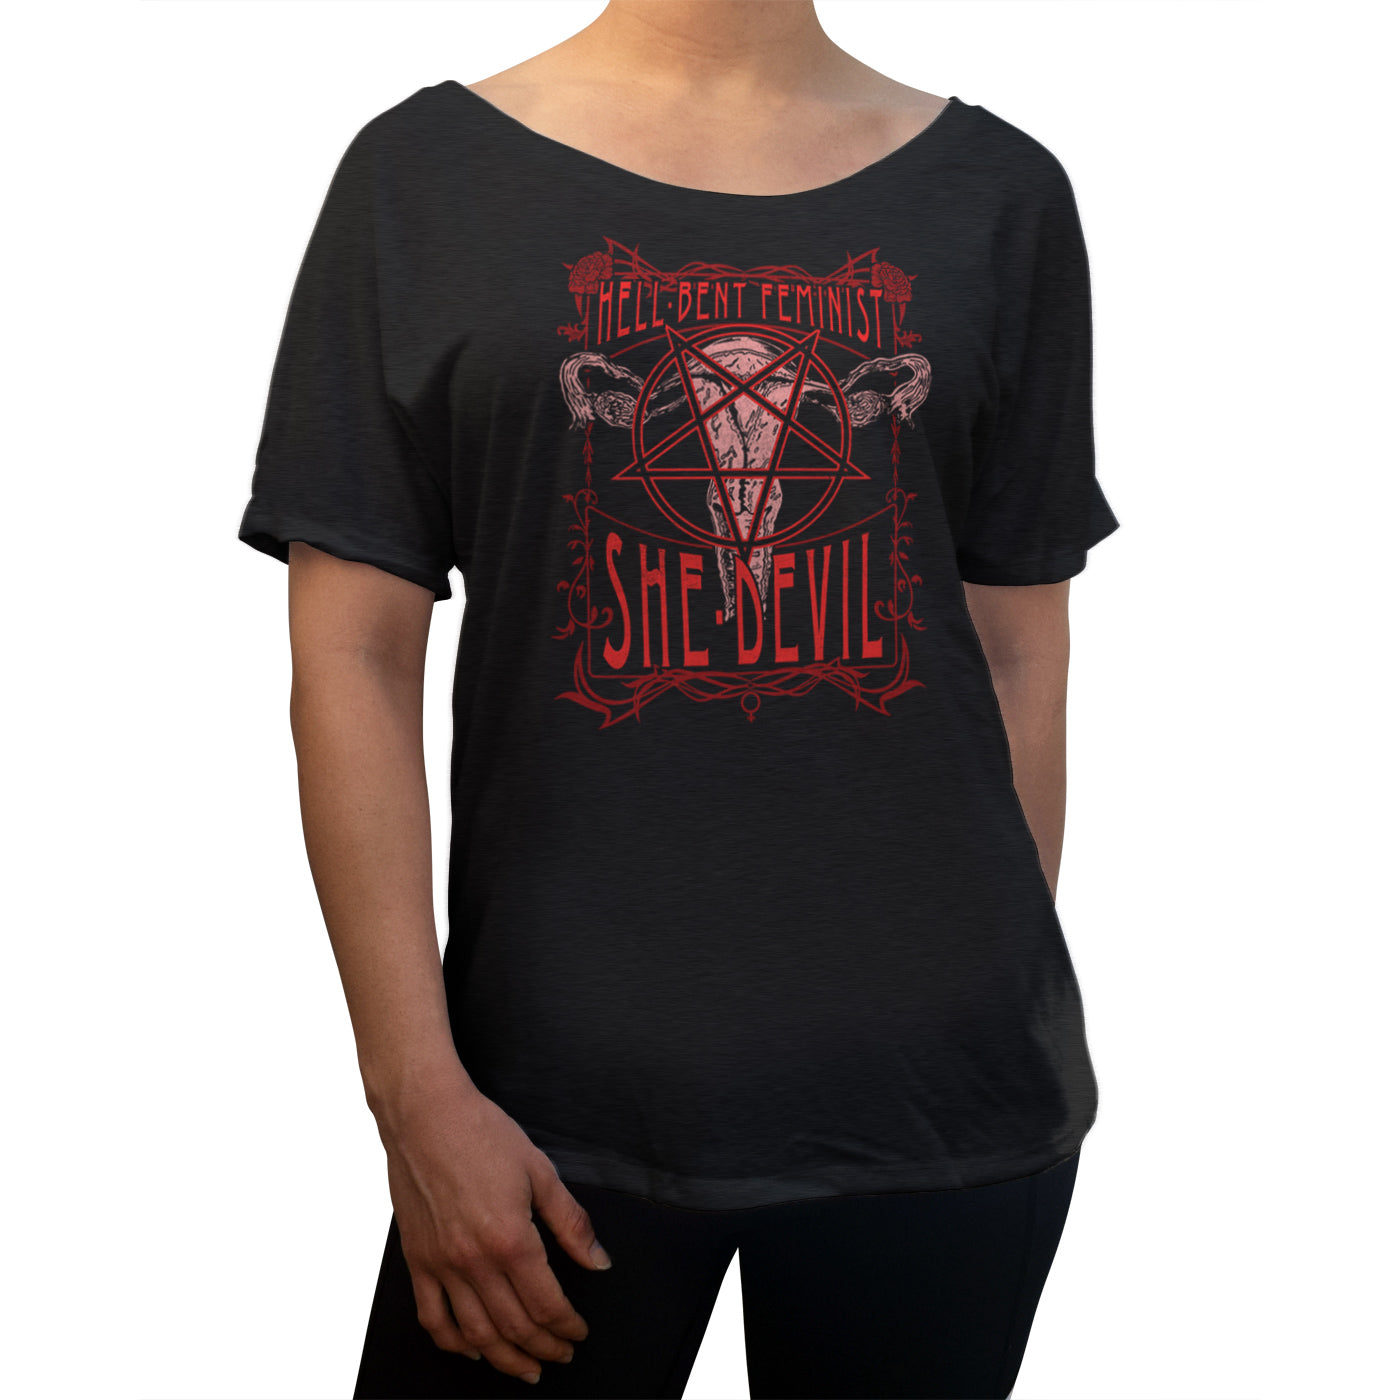 Women's Hell-Bent Feminist She-Devil Scoop Neck T-Shirt